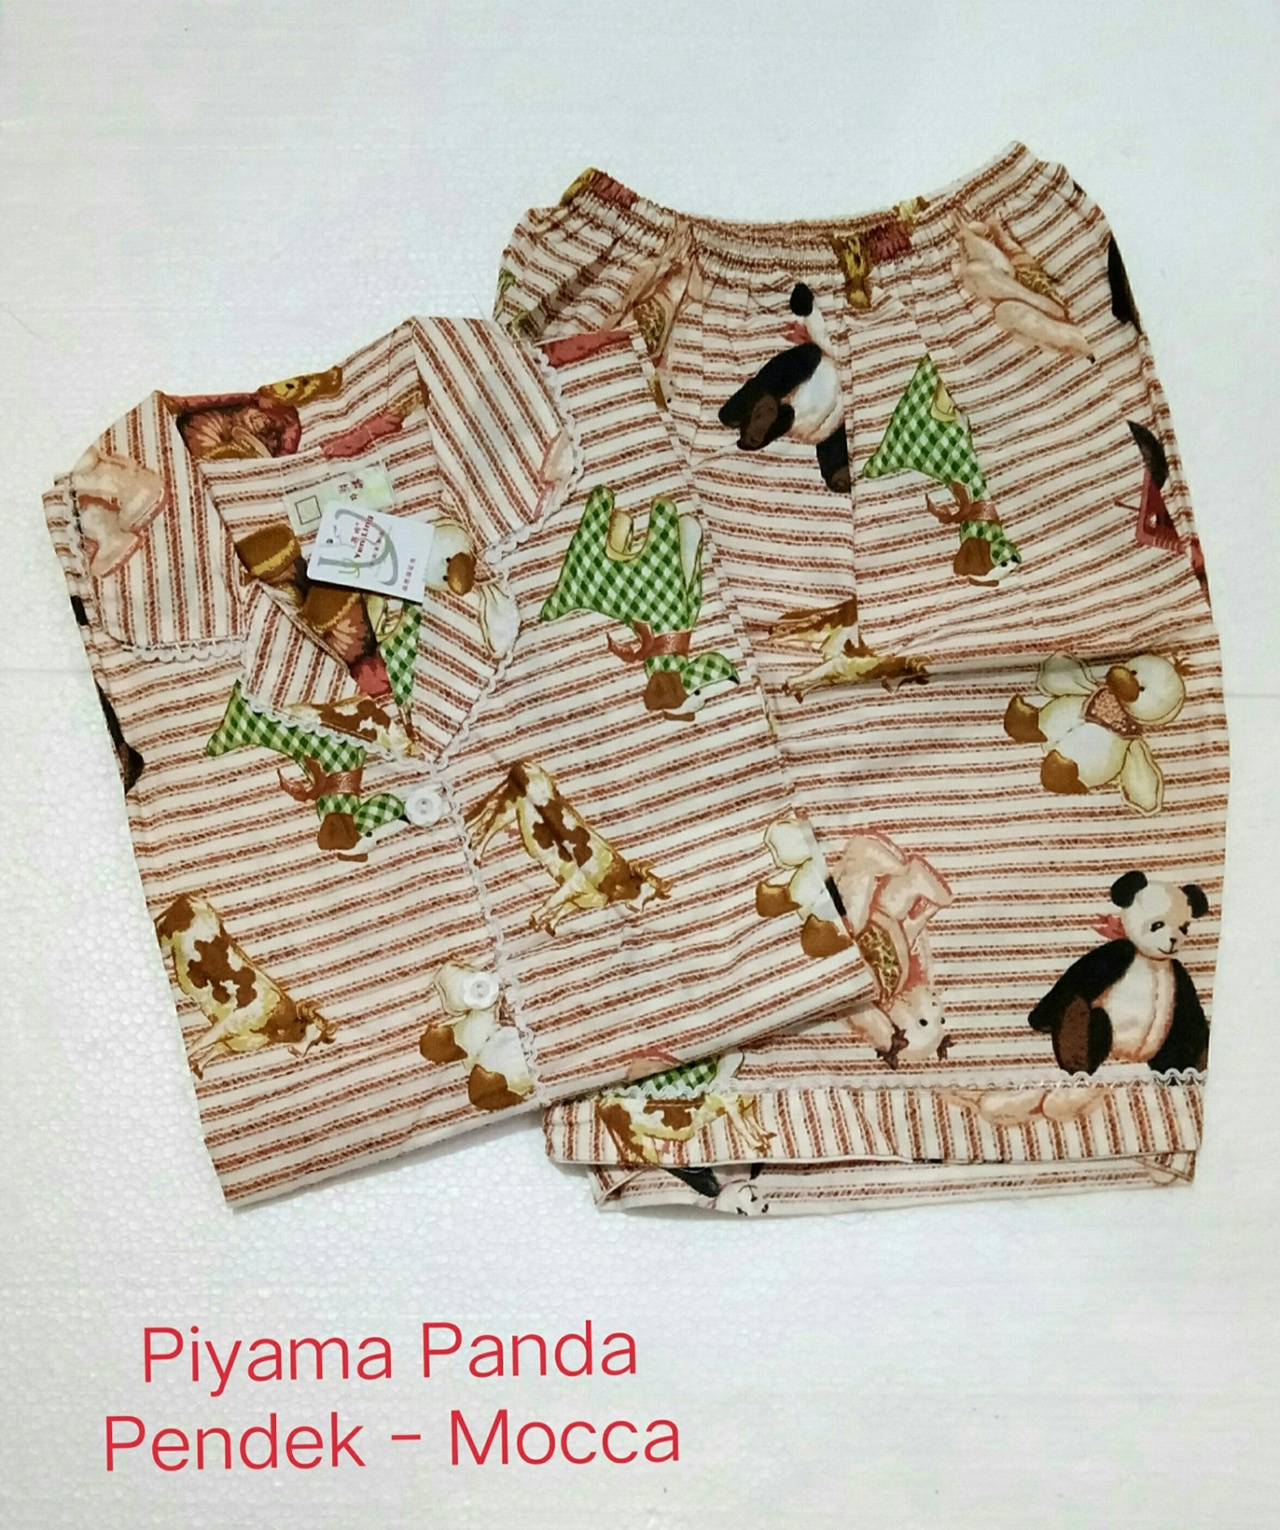 ... Fortune Fashion Piyama Domba Panjang Tosca Daftar Update Harga Source Fortune Fashion Piyama Pendek Panda Bahan